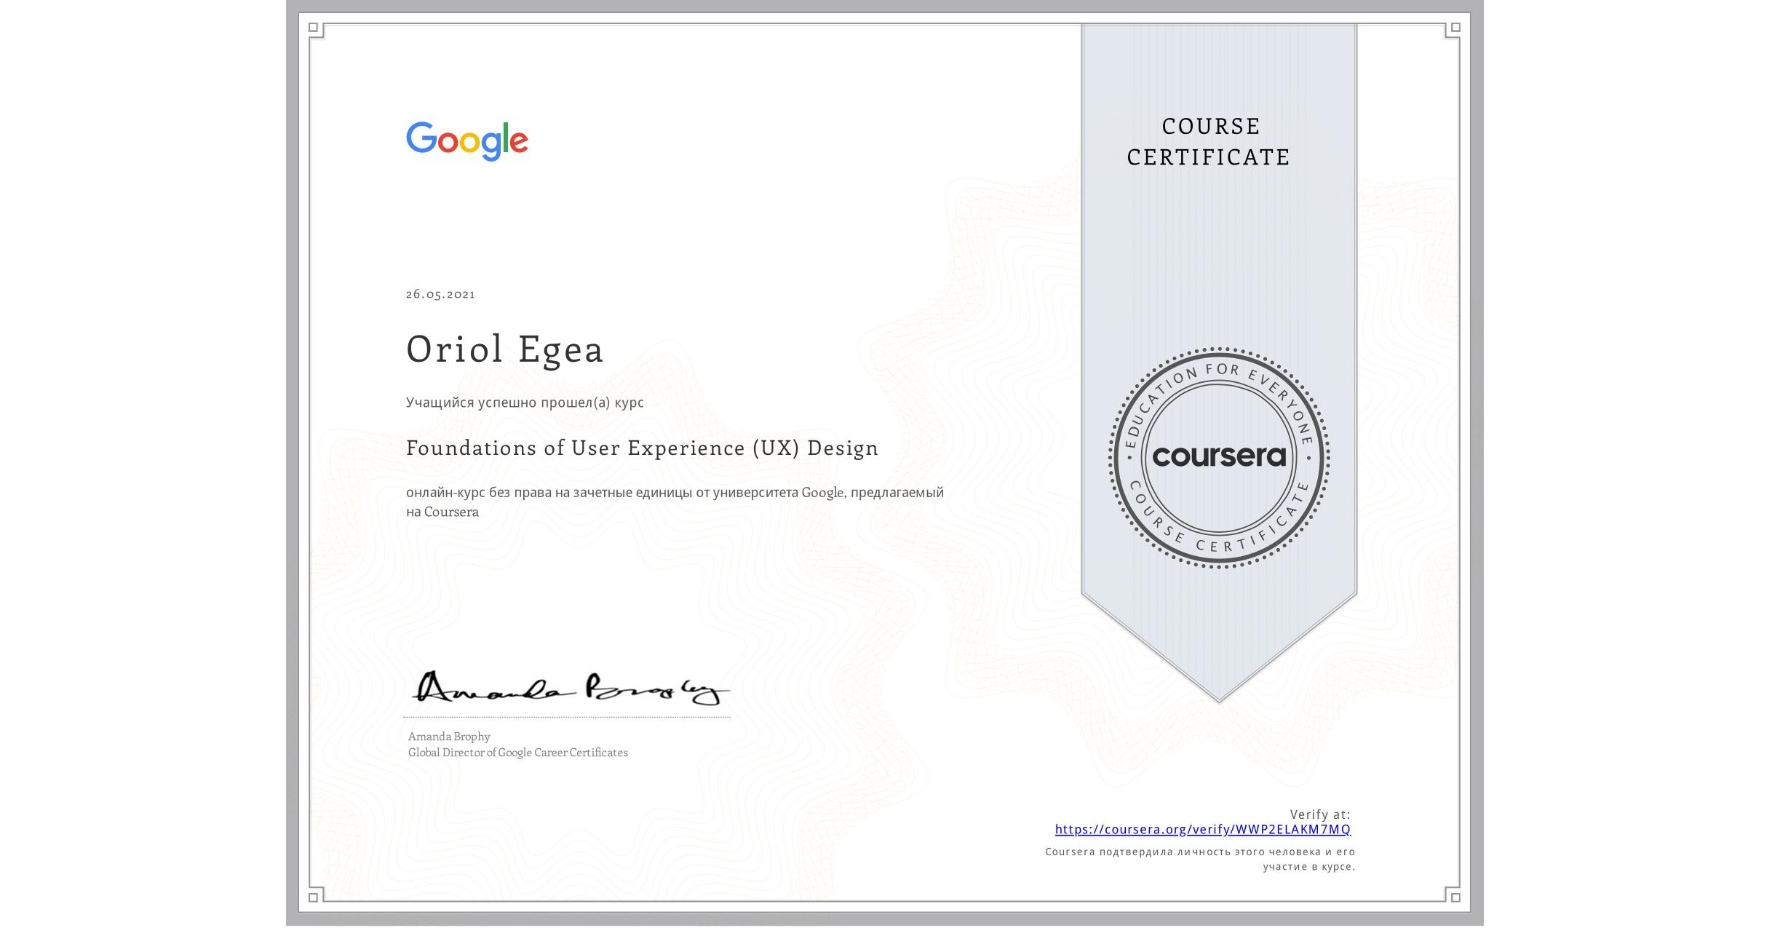 View certificate for Oriol Egea, Foundations of User Experience (UX) Design, an online non-credit course authorized by Google and offered through Coursera